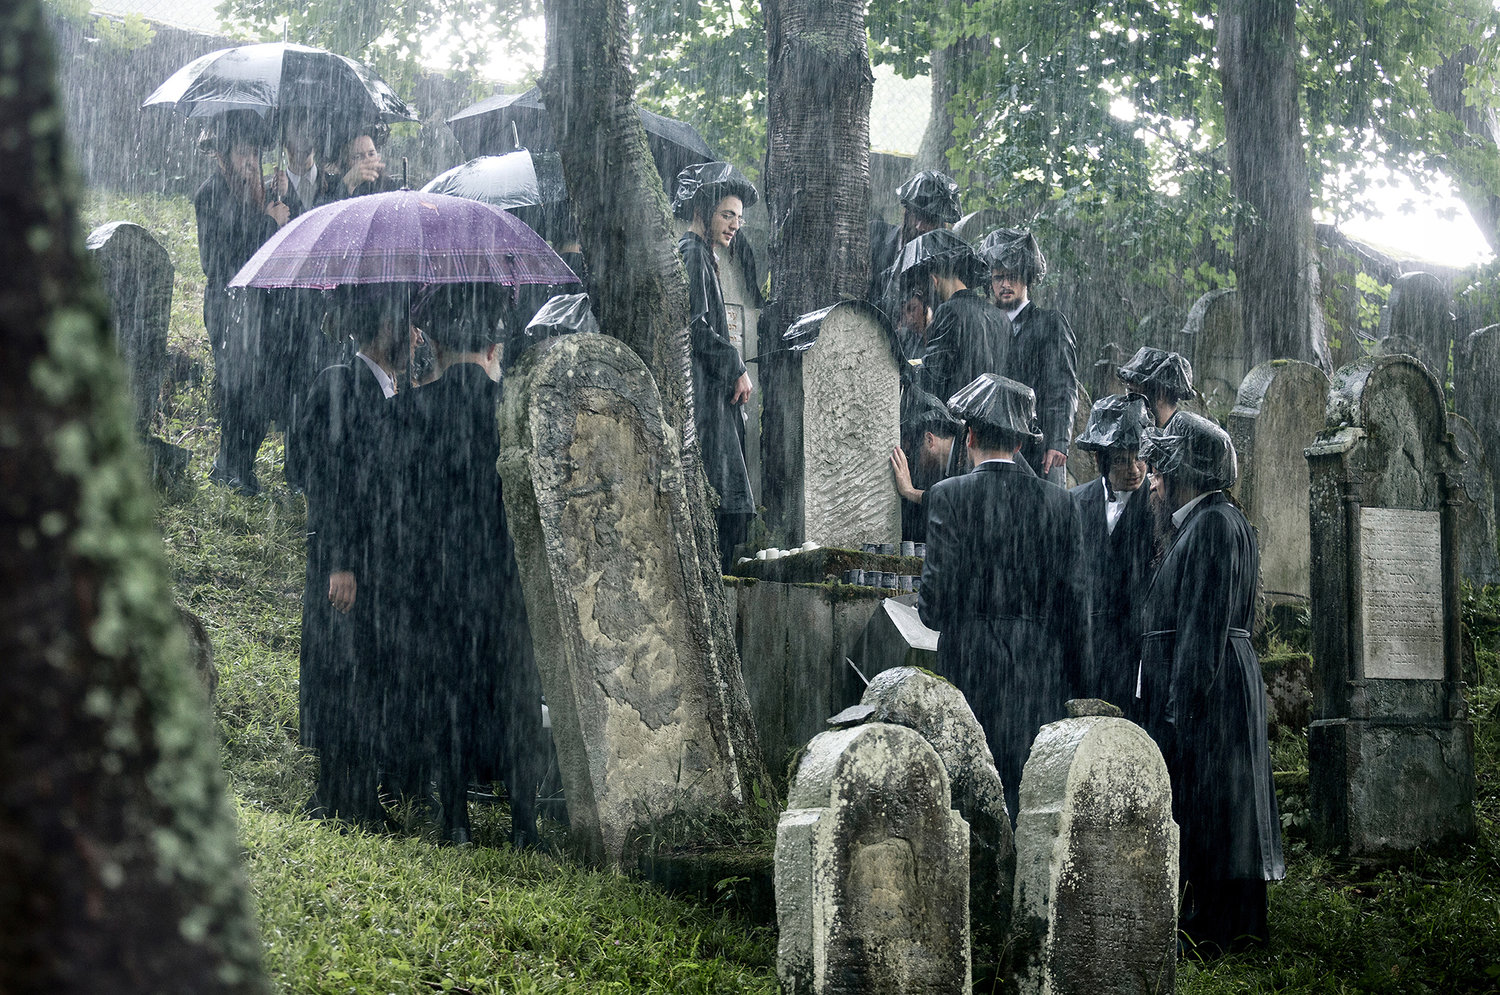 Hasidim withstand a downpour during a visit to a Jewish cemetery in the Polish town of Krynica Gorska.